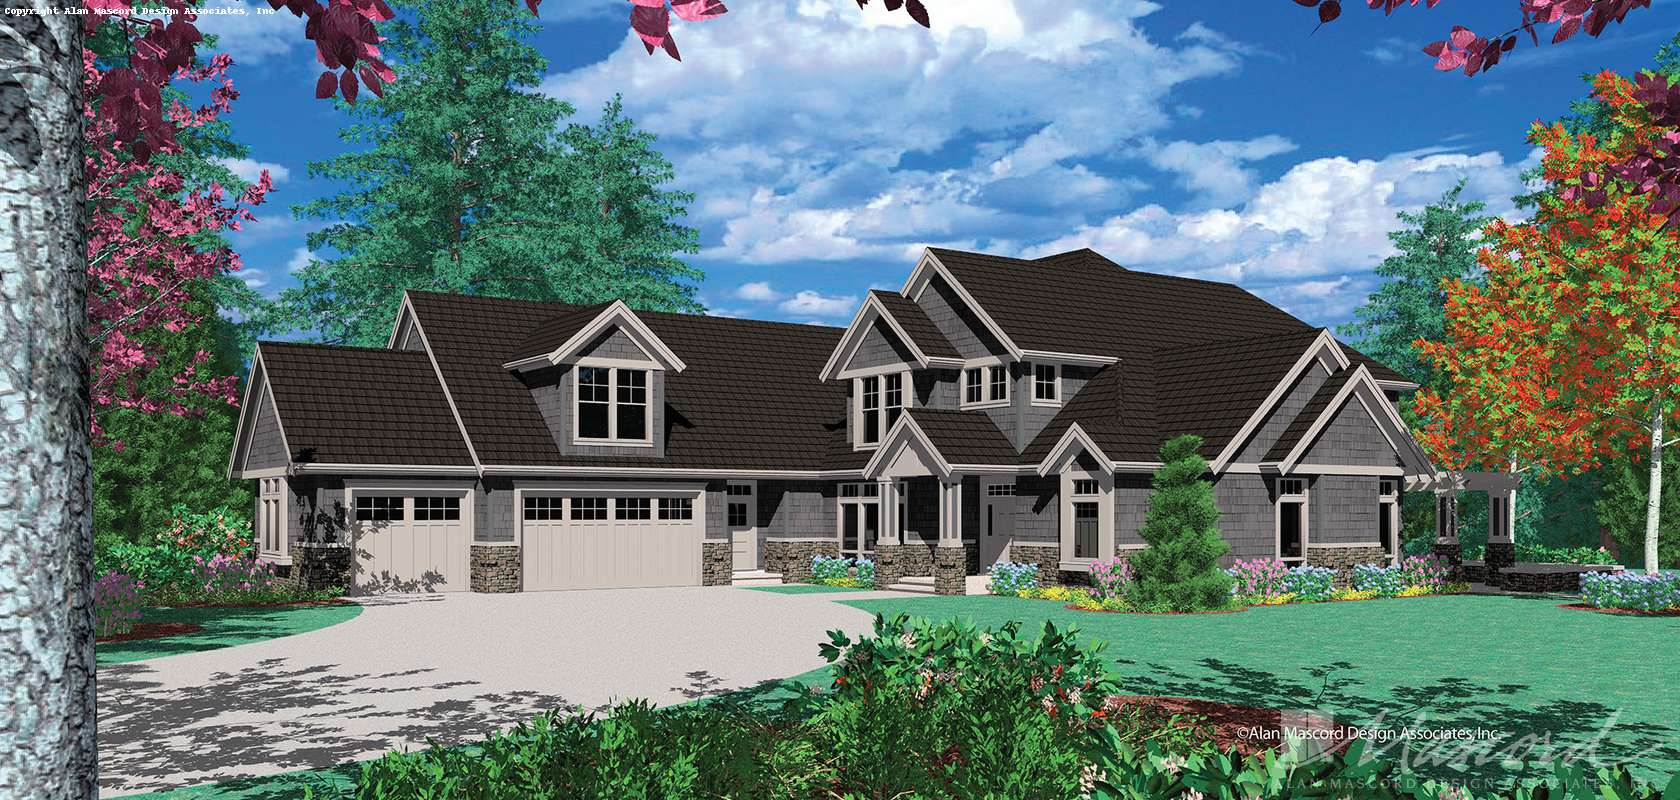 Mascord House Plan B2345C: The